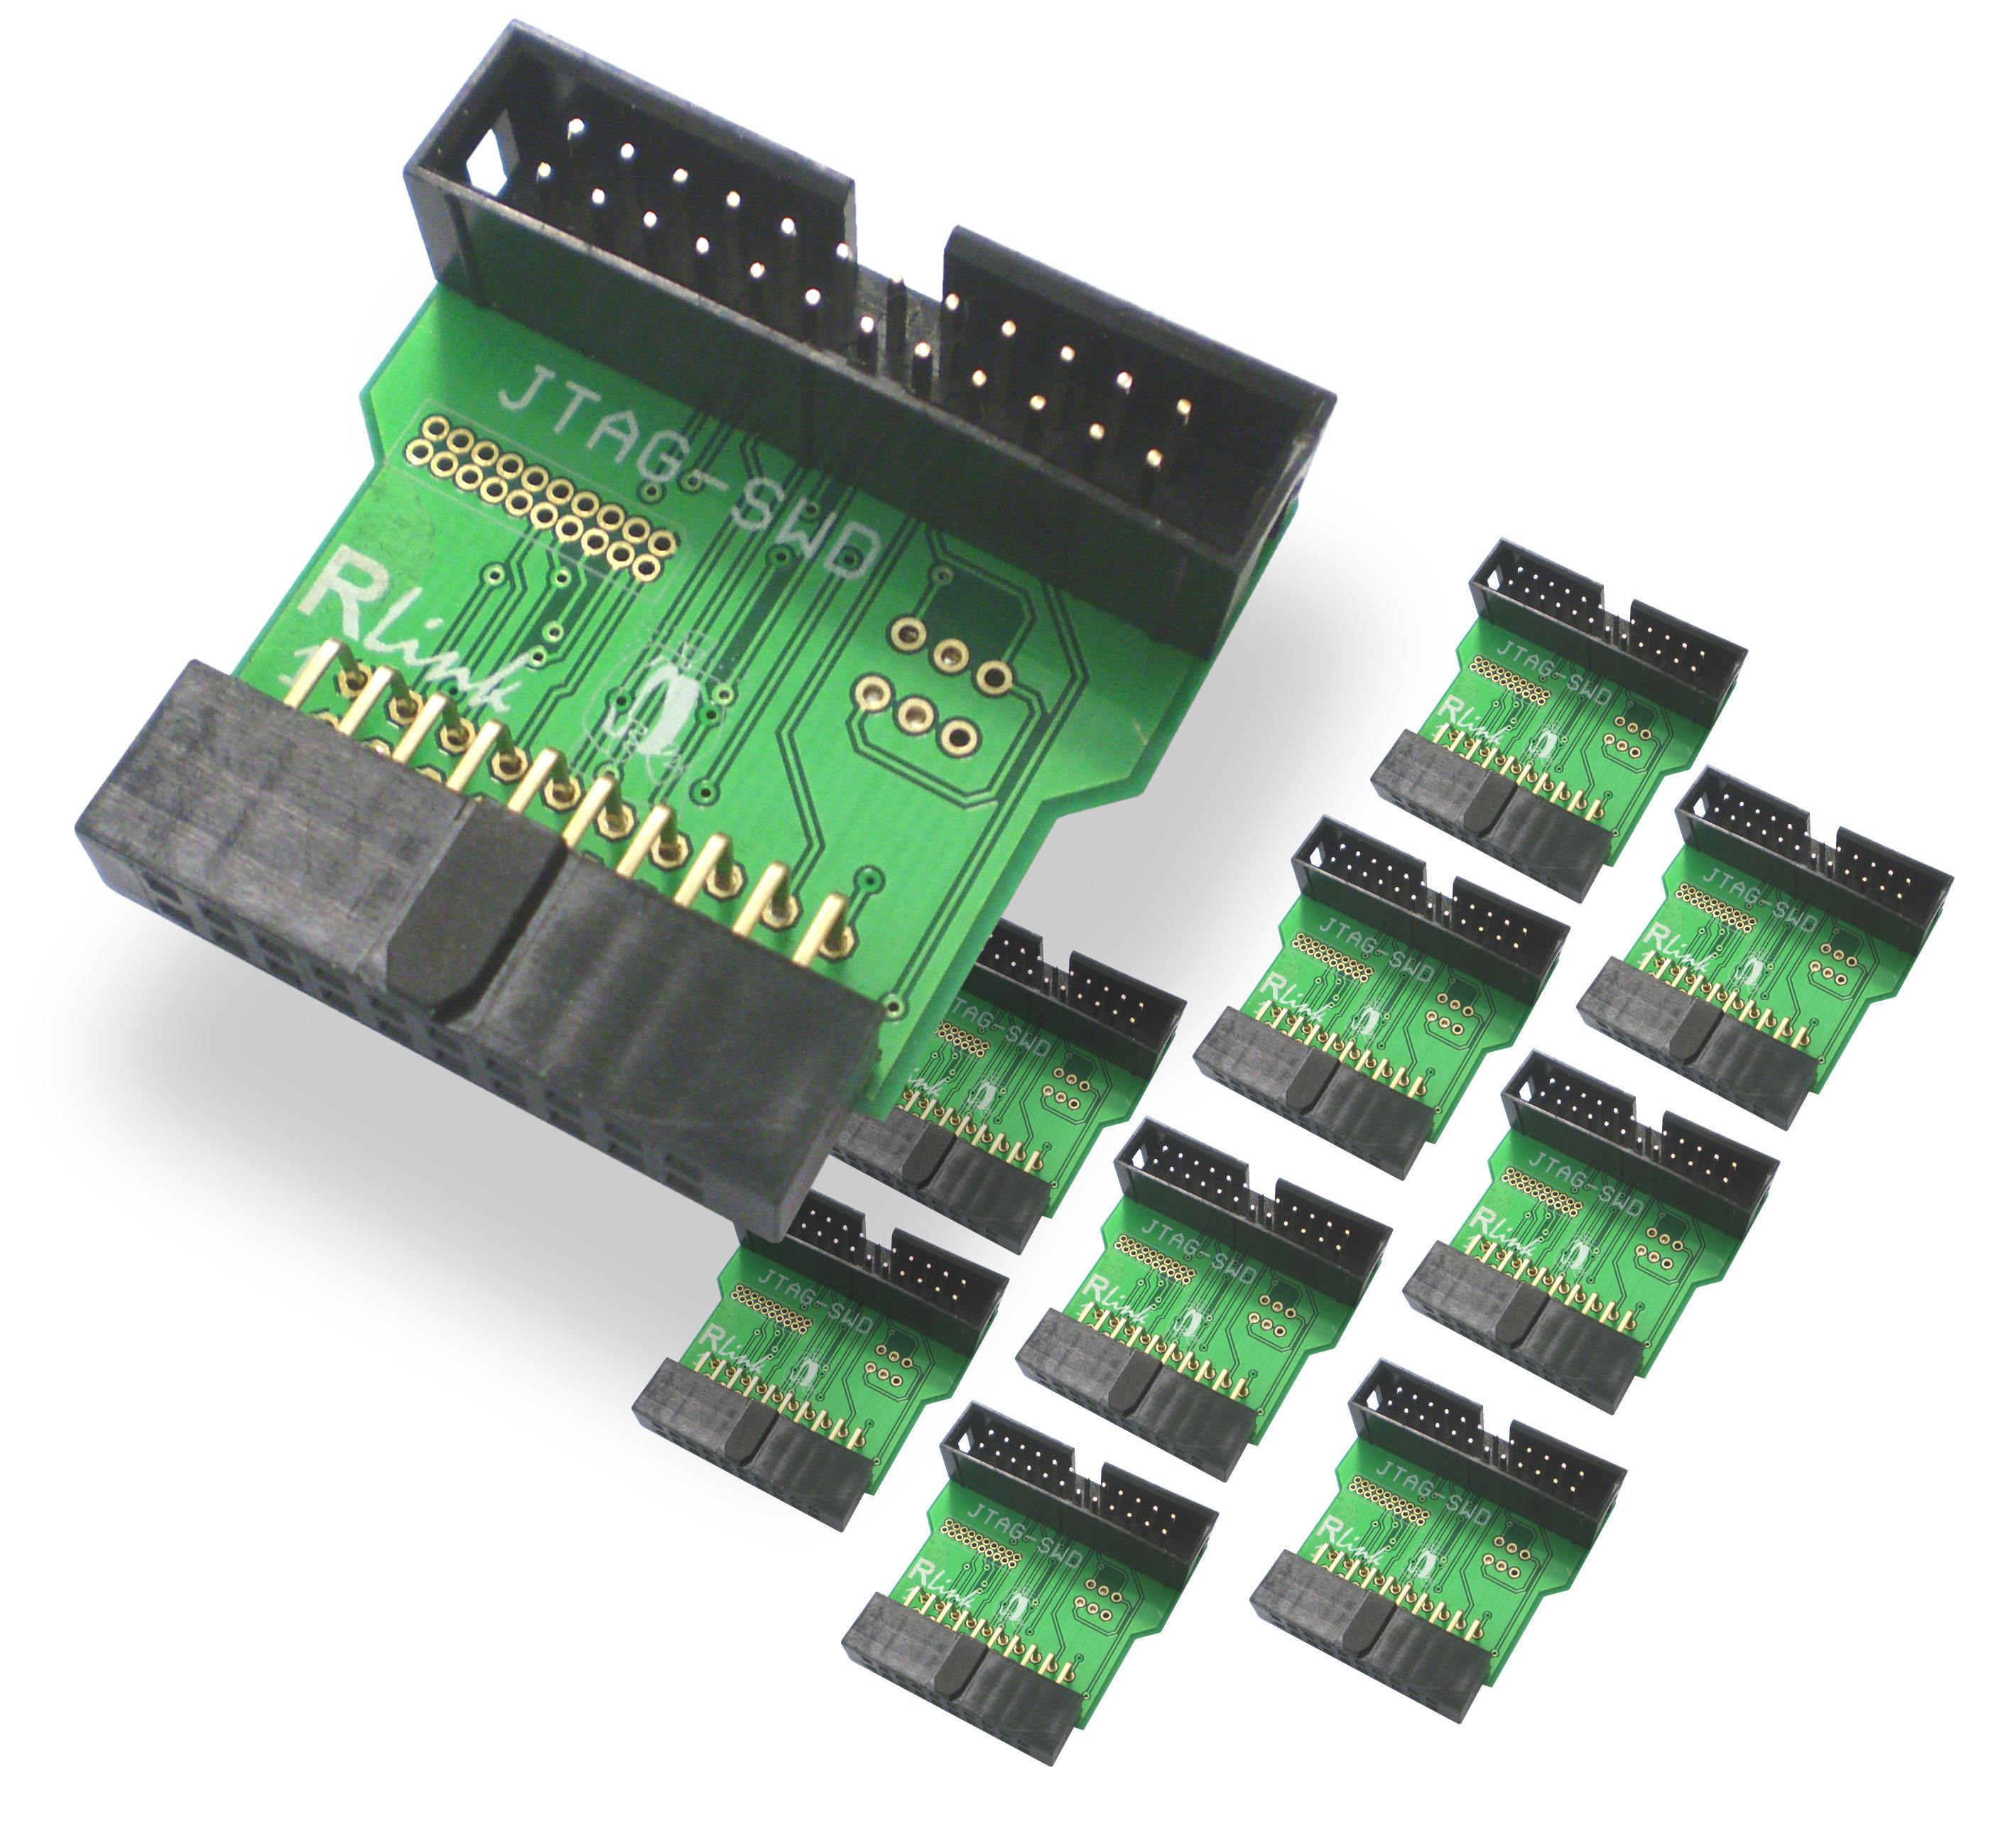 10 RLink Connection Adapters for ARM microcontrollers